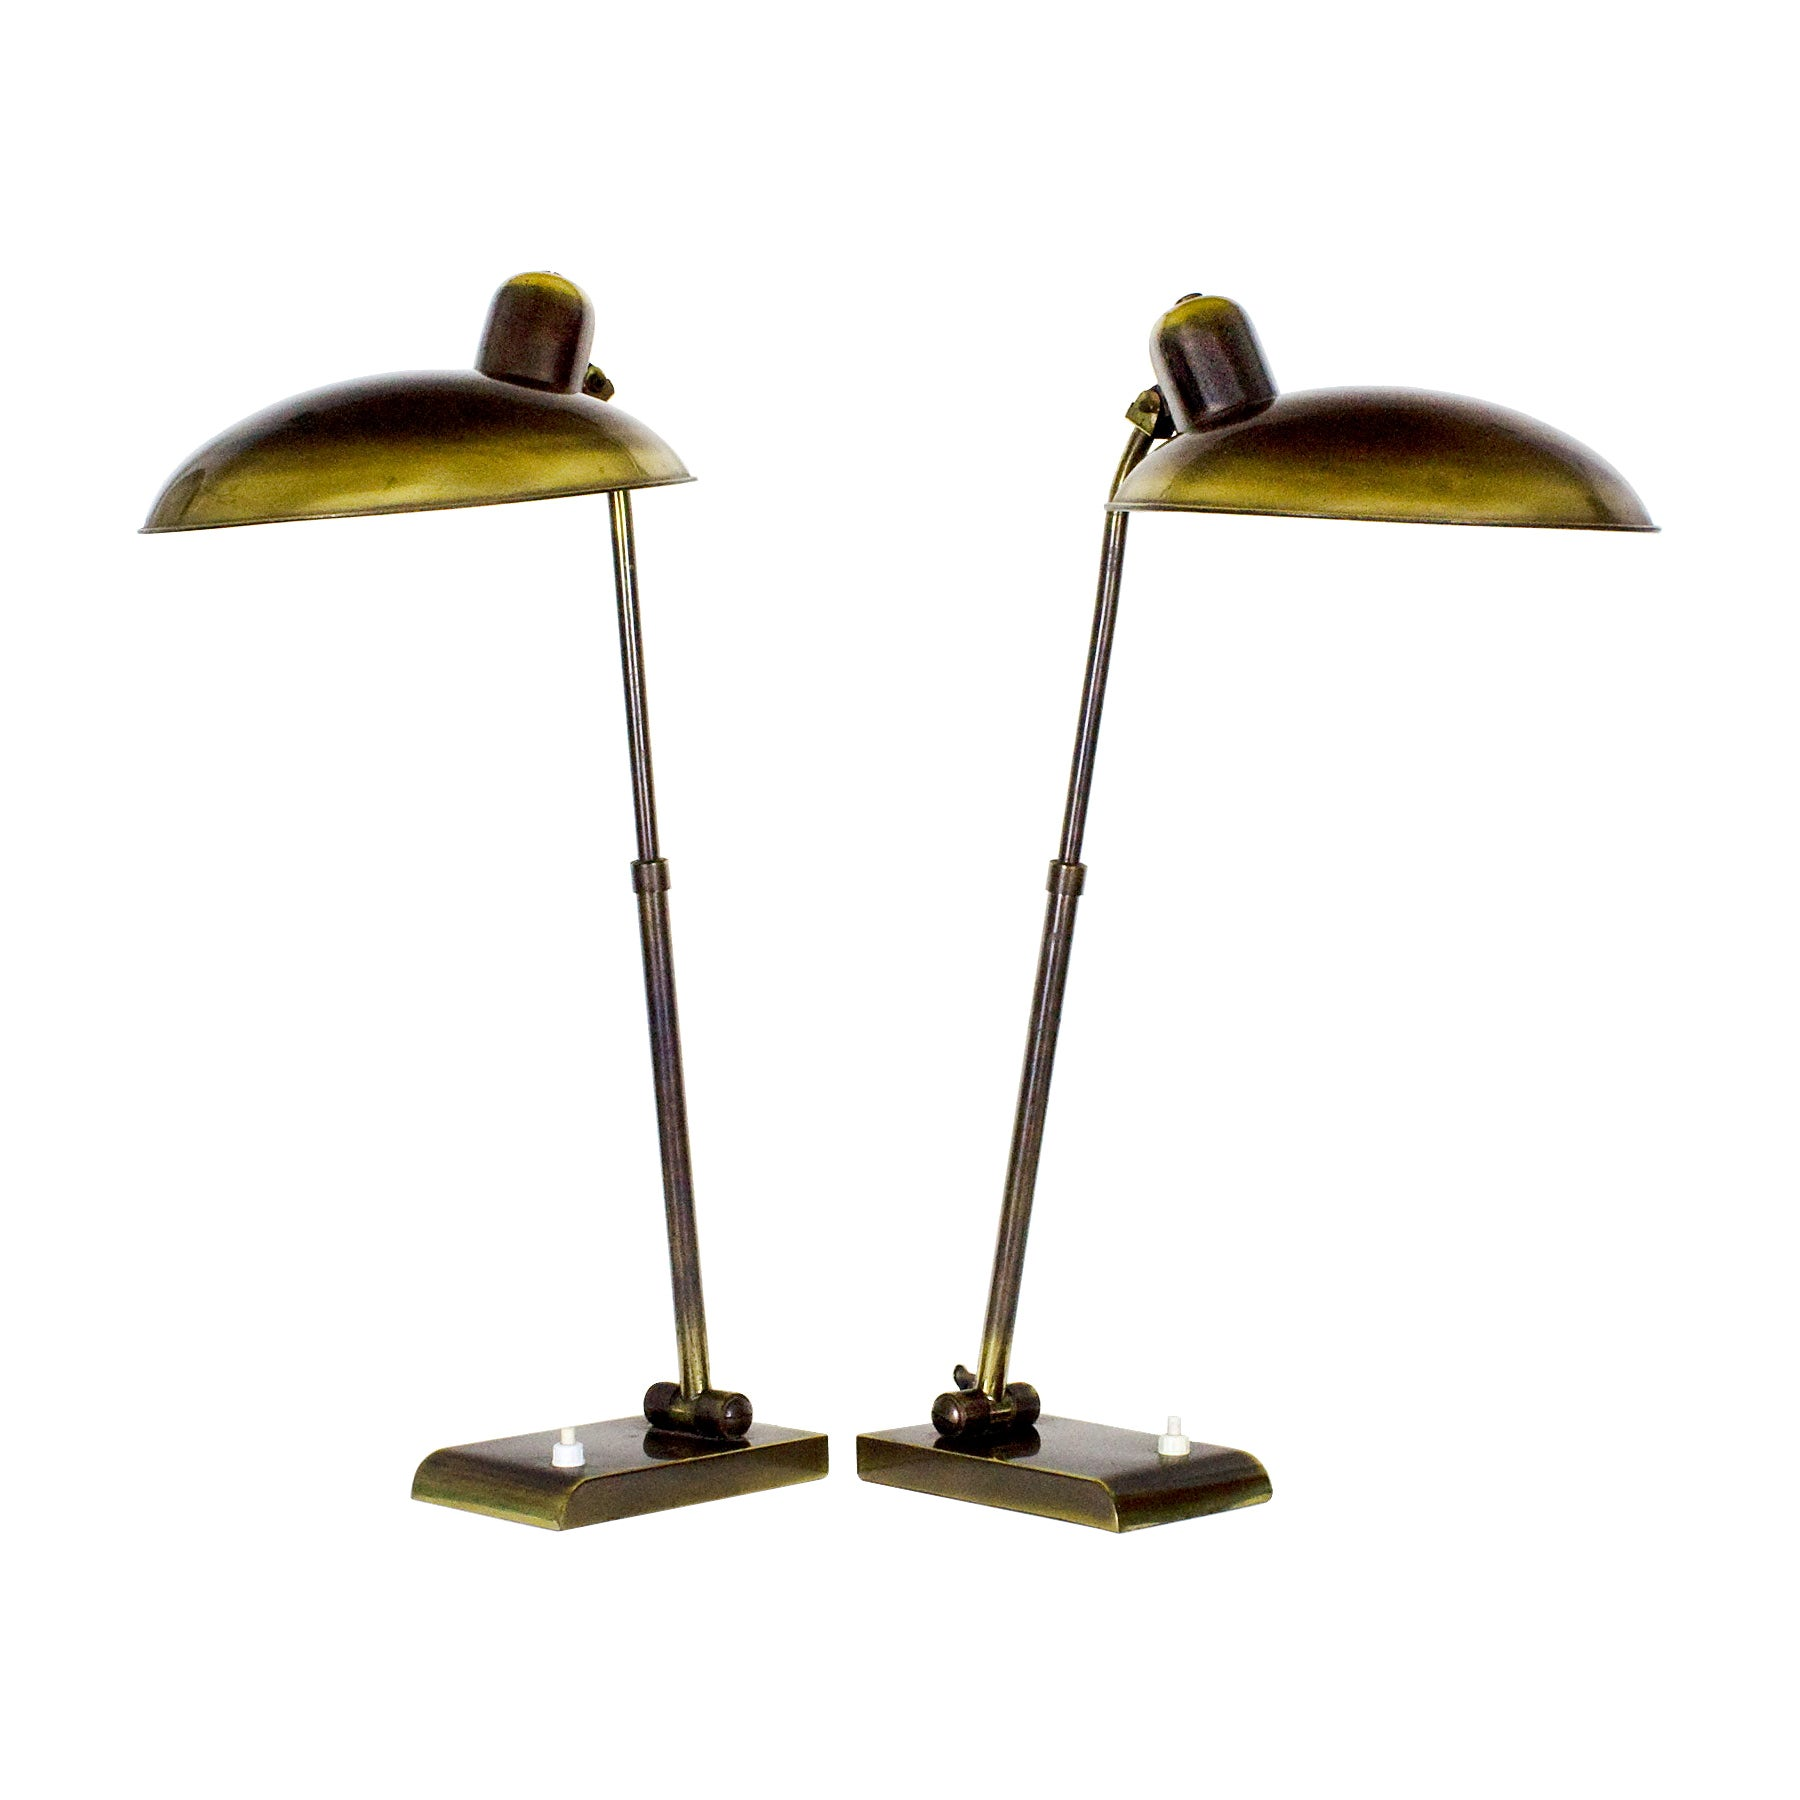 1950s Pair of Desk Lamps, Patinated Brass, Inclinations Systems, Italy